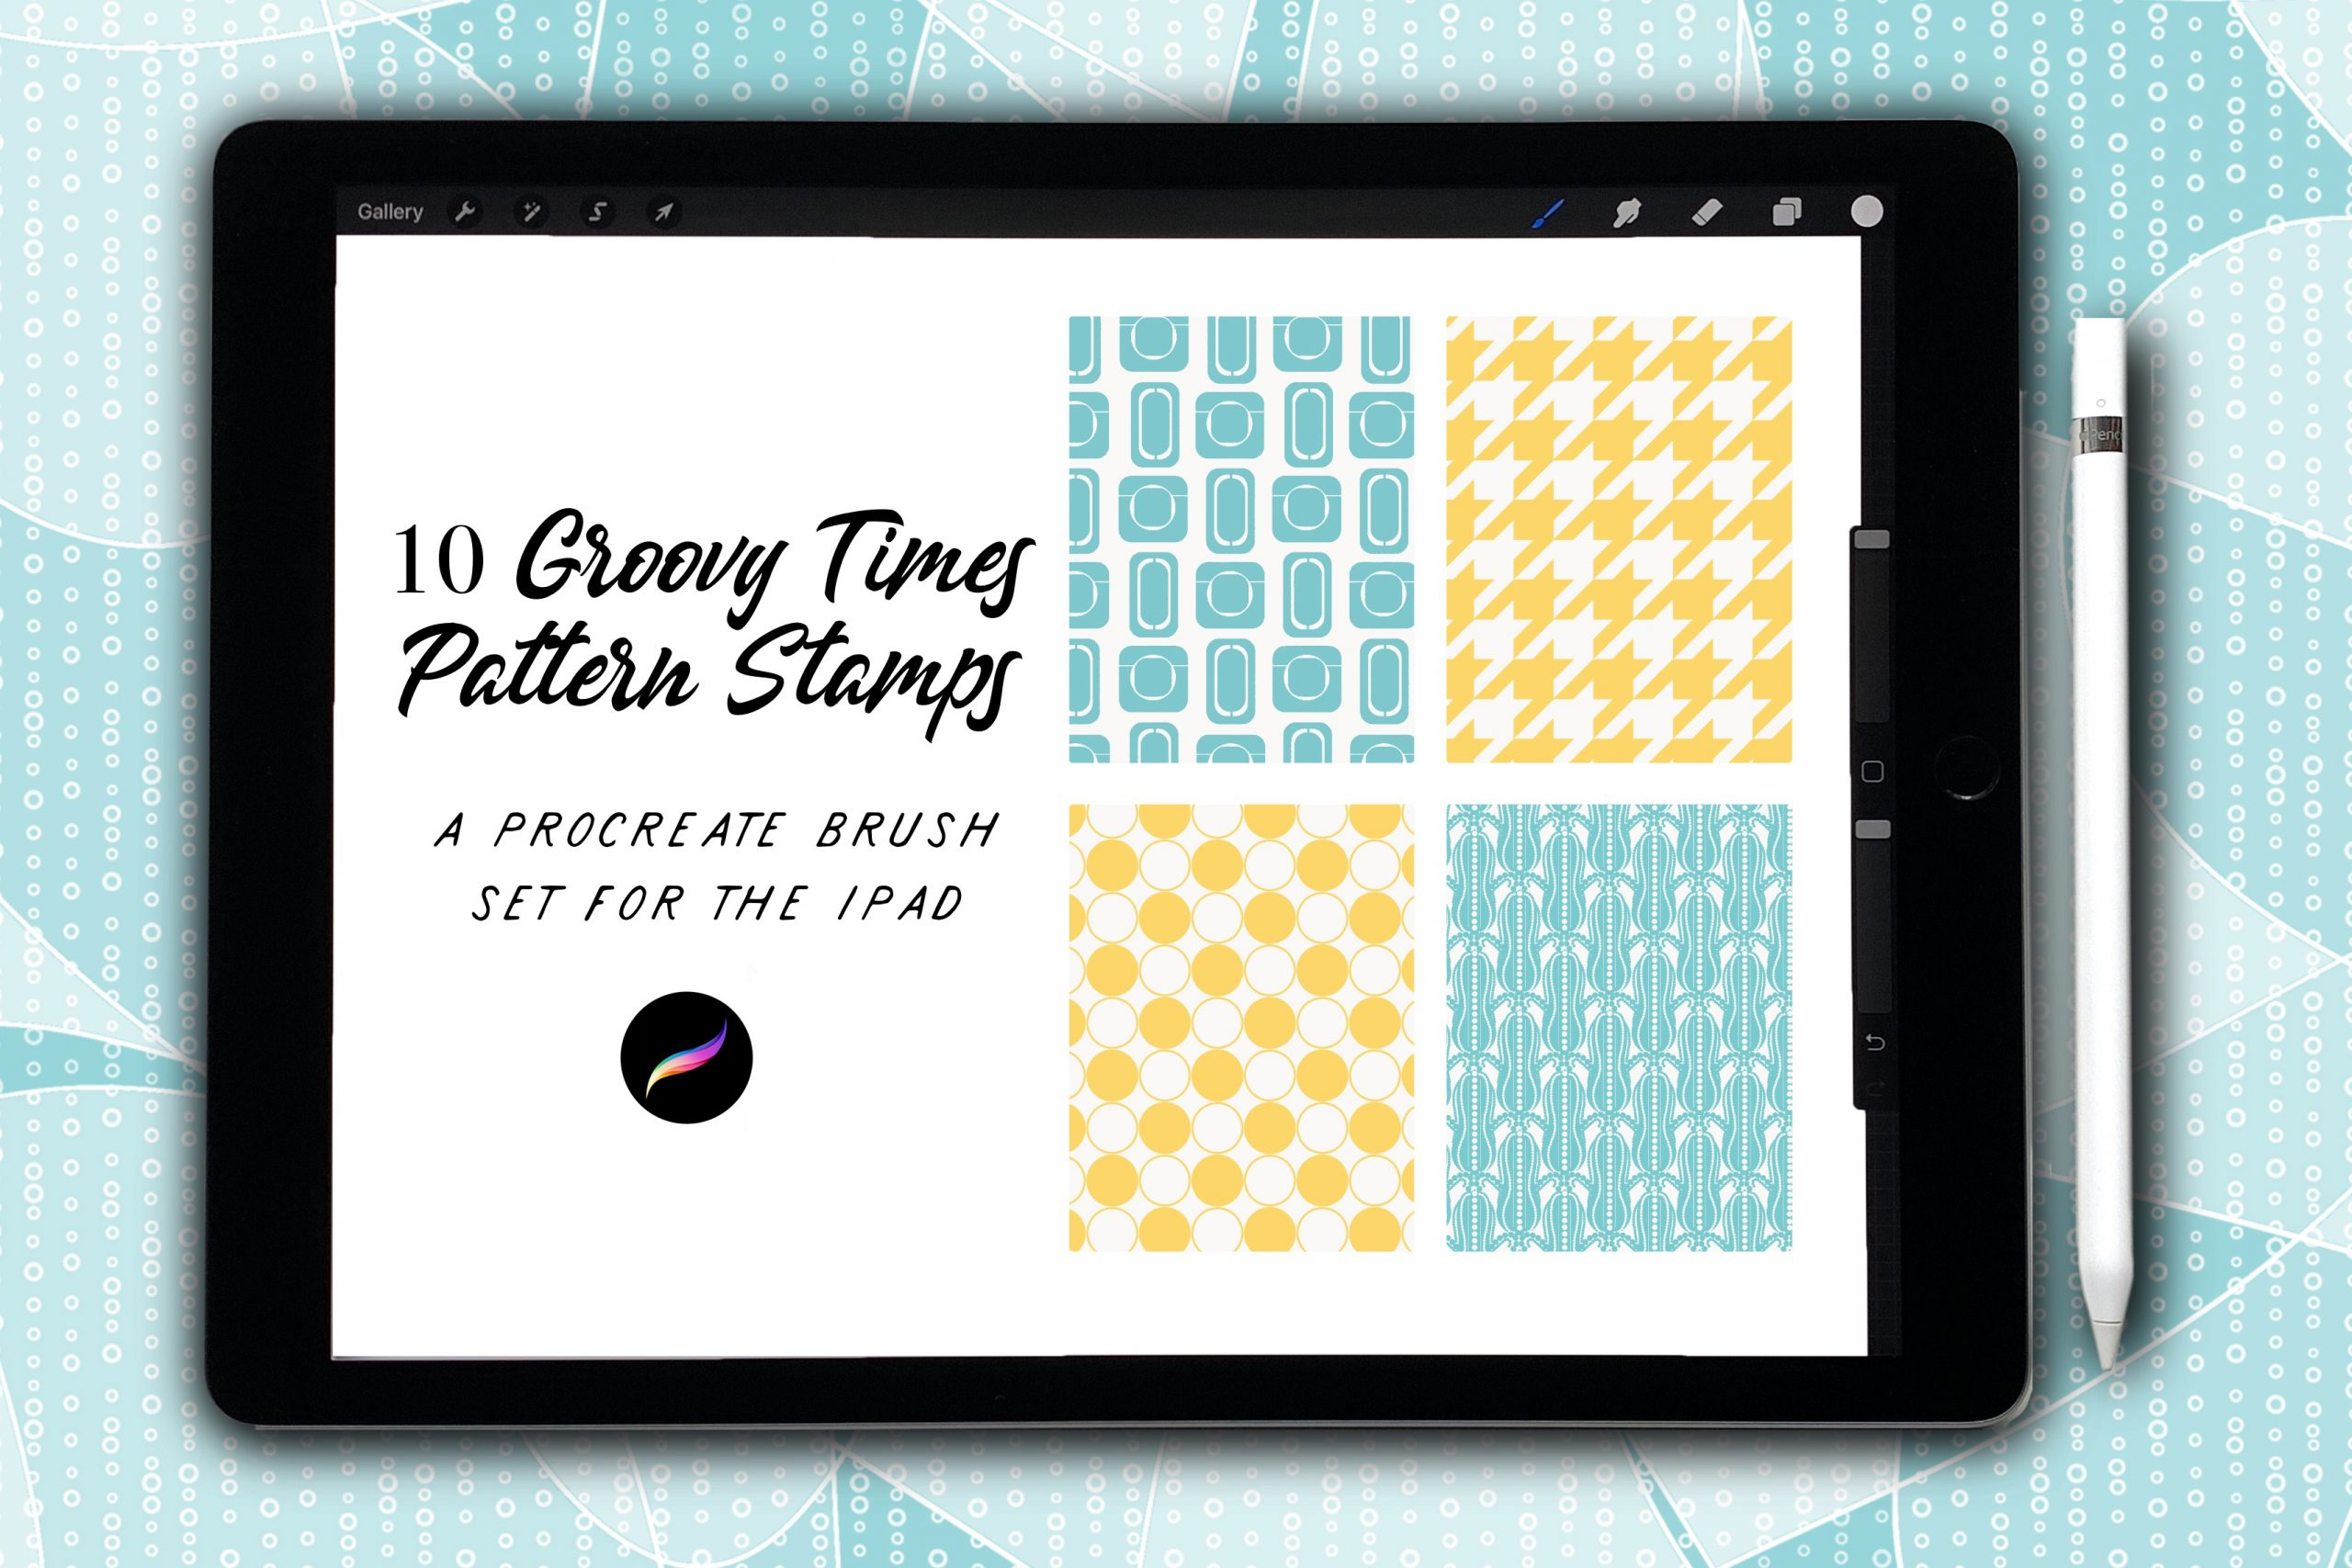 Groovy Times Pattern Stamps